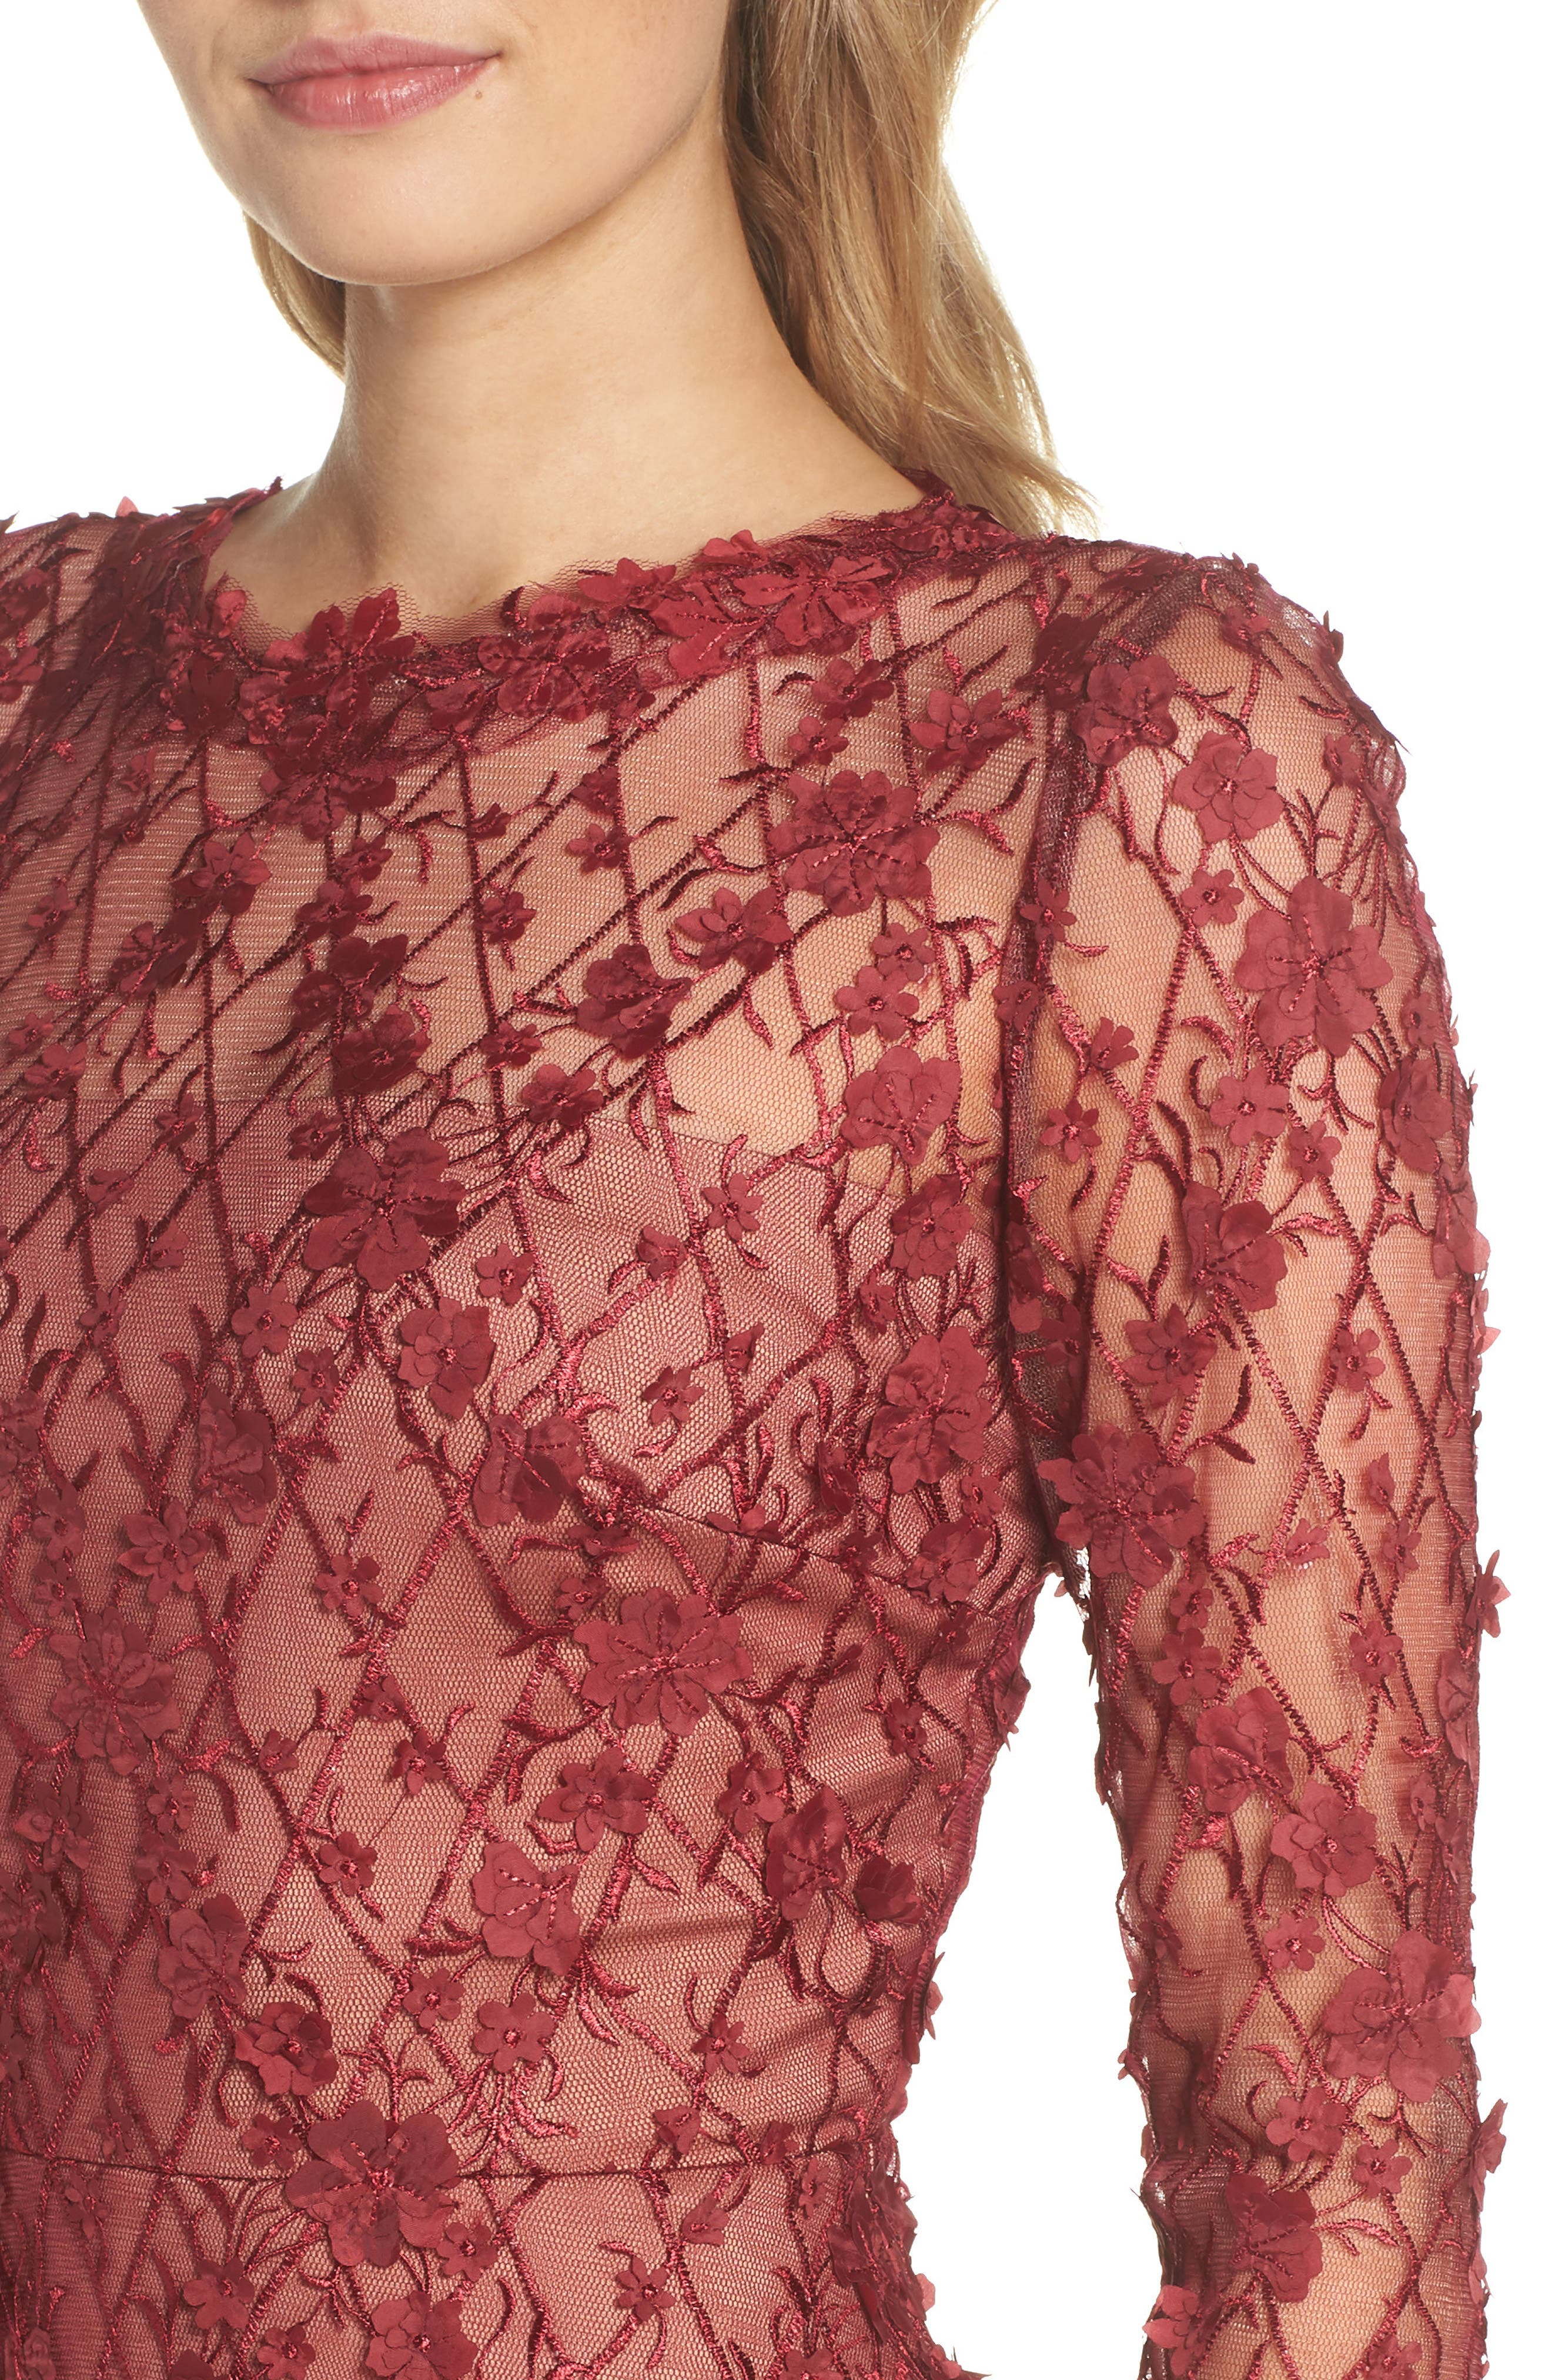 3D Flowers Lace Dress,                             Alternate thumbnail 4, color,                             Rosewood/ Nude